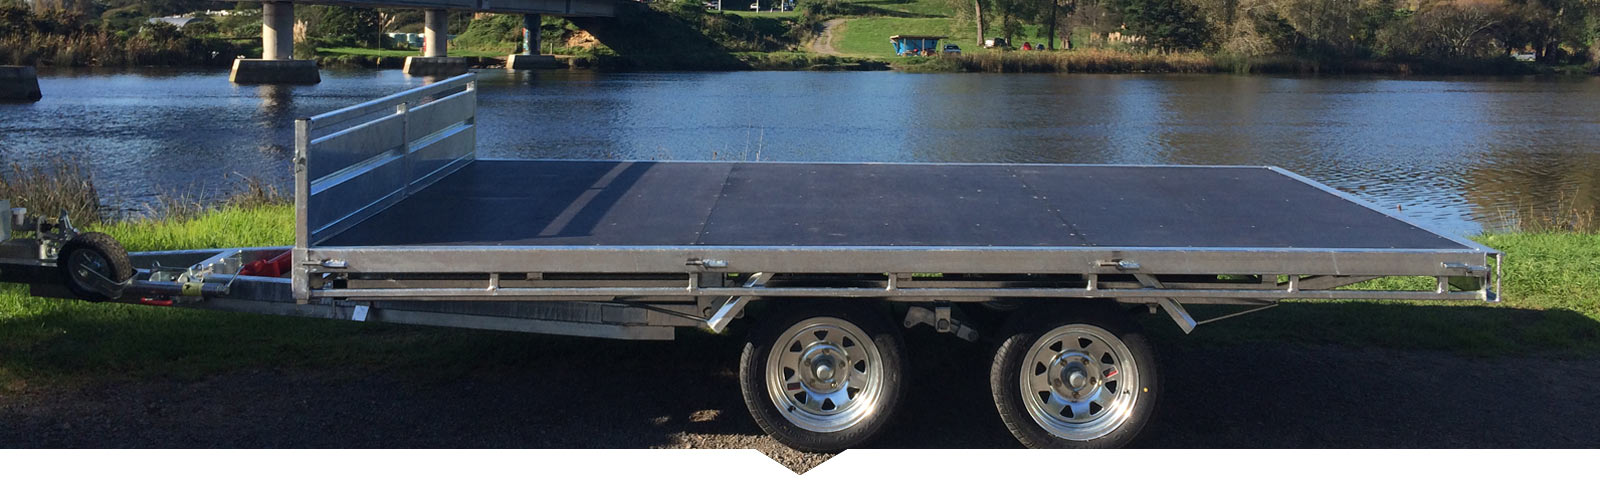 Contact Trailor Made for black plywood flat deck trailers.